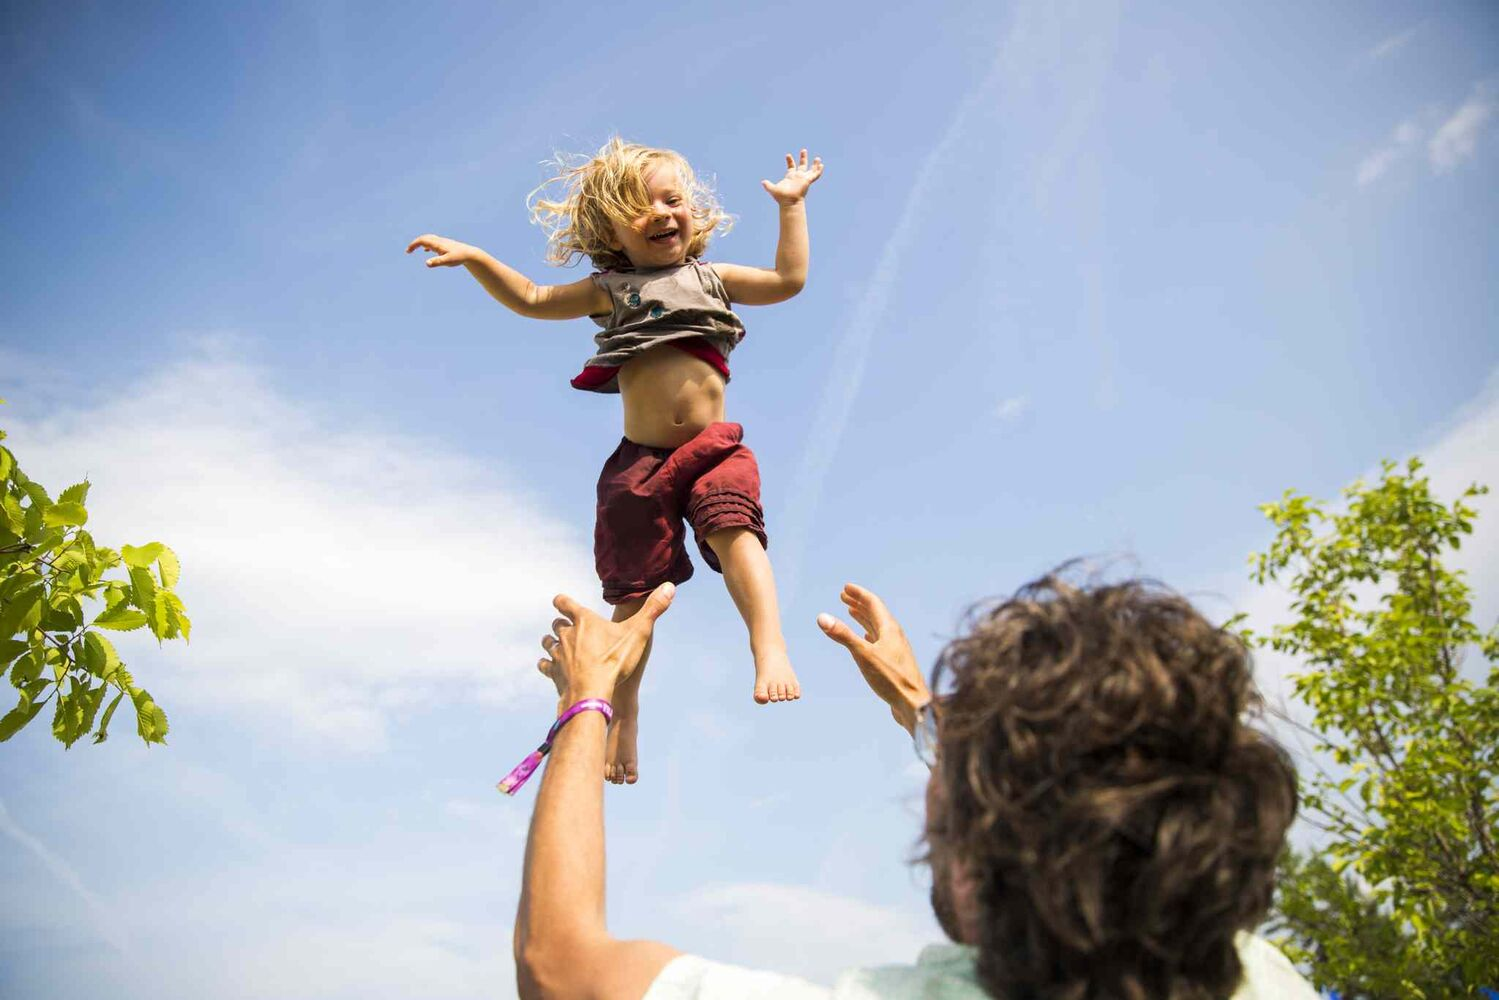 Ari Octavio gets thrown in the air by his dad at the Winnipeg Folk Festival at Birds Hill Provincial Park on Saturday, July 11, 2015.   Mikaela MacKenzie / Winnipeg Free Press (Winnipeg Free Press)